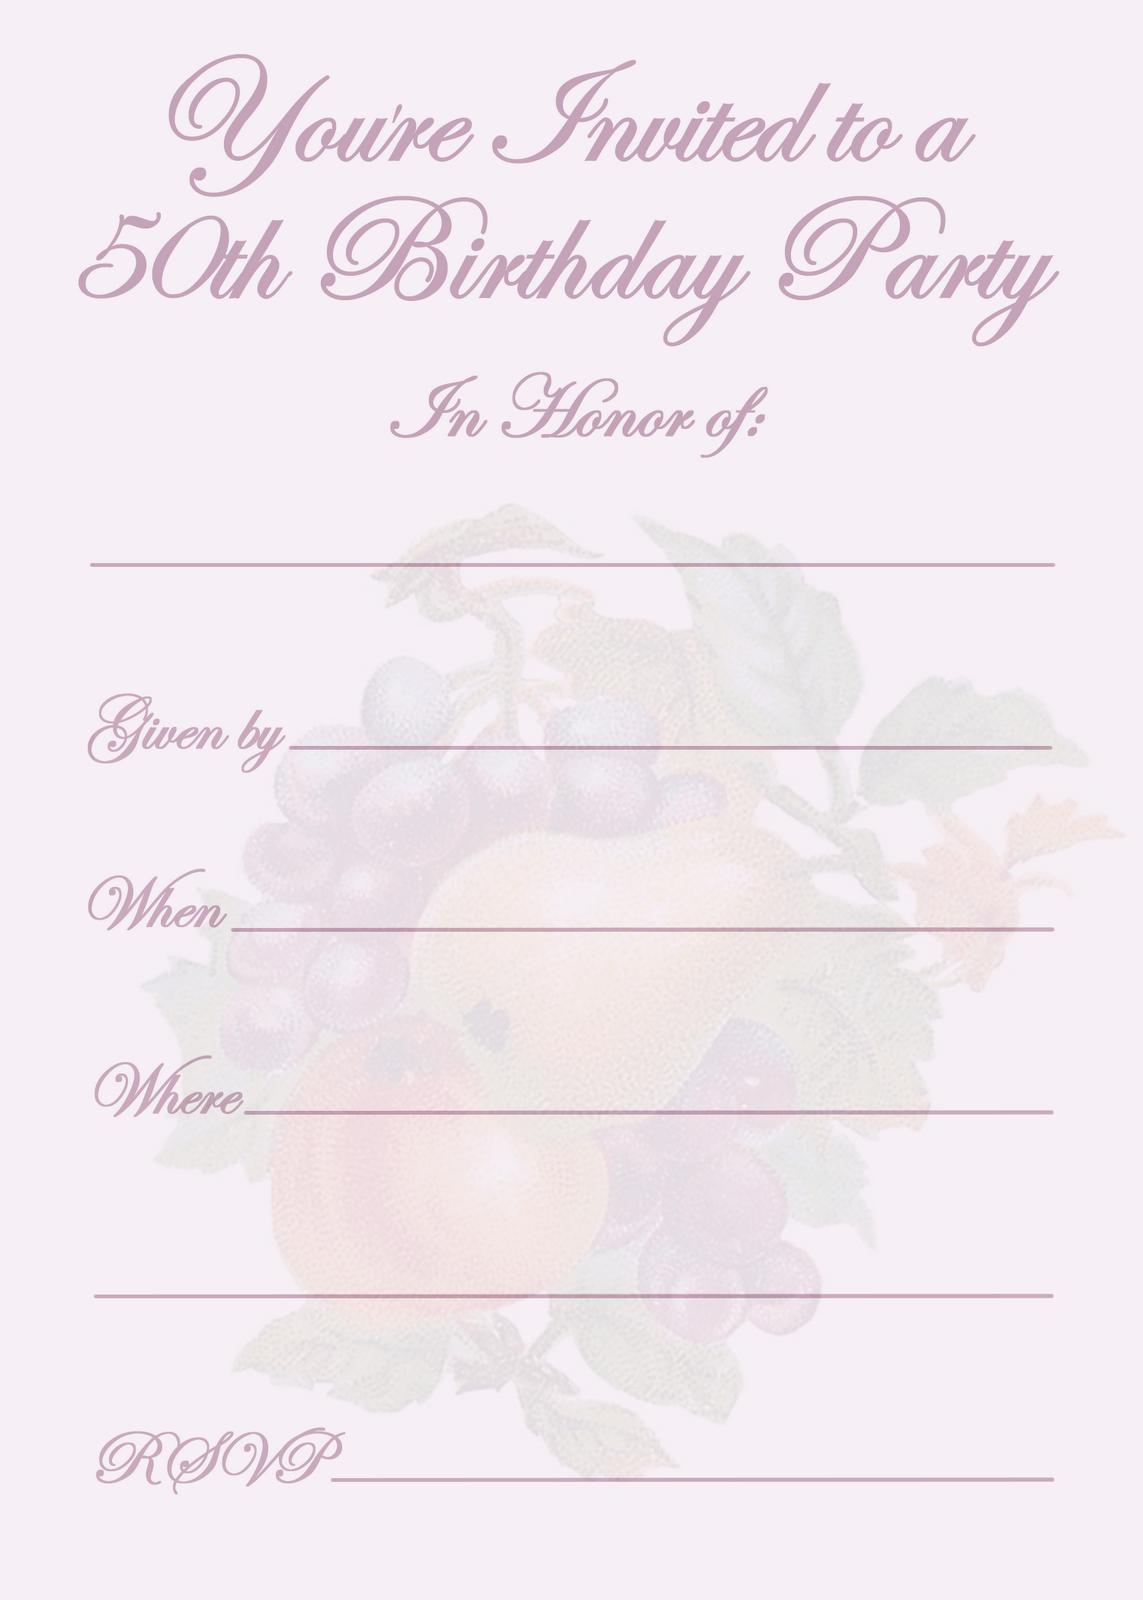 birthday party invitation templates net th birthday party invitation templates drevio invitations design birthday invitations